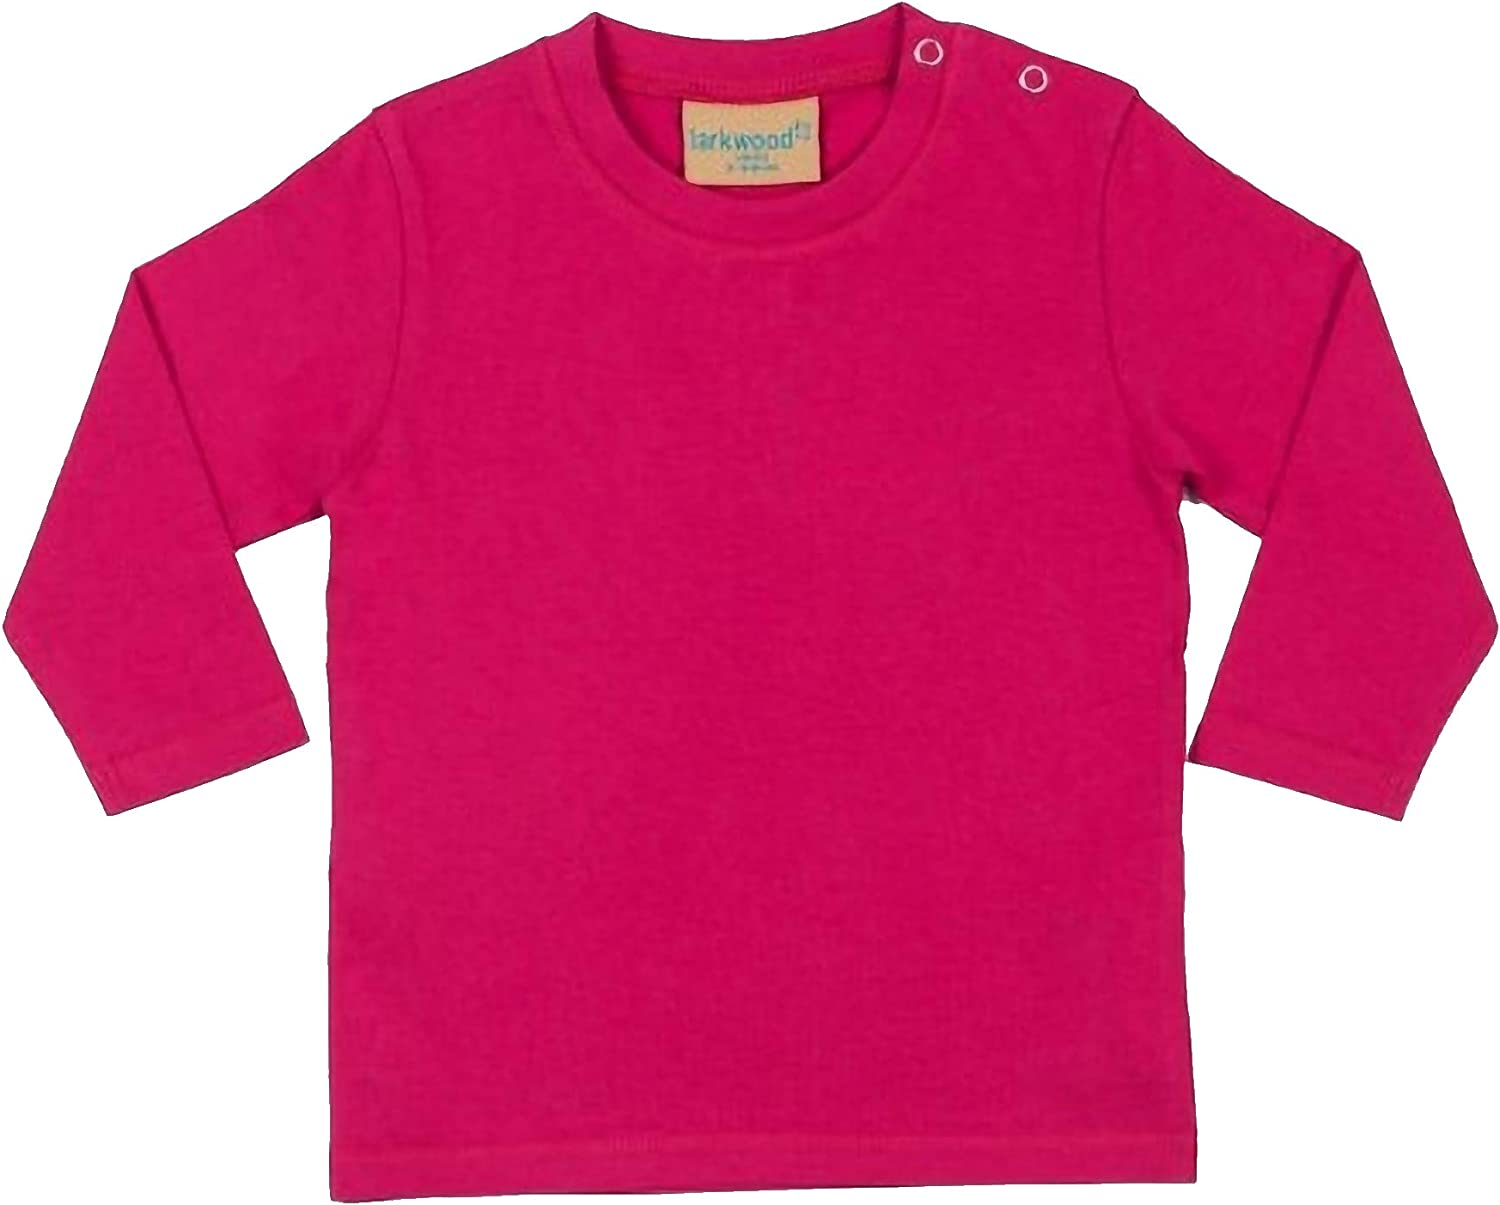 24-36 Pale Blue Larkwood Baby Unisex Plain Long Sleeve T-Shirt